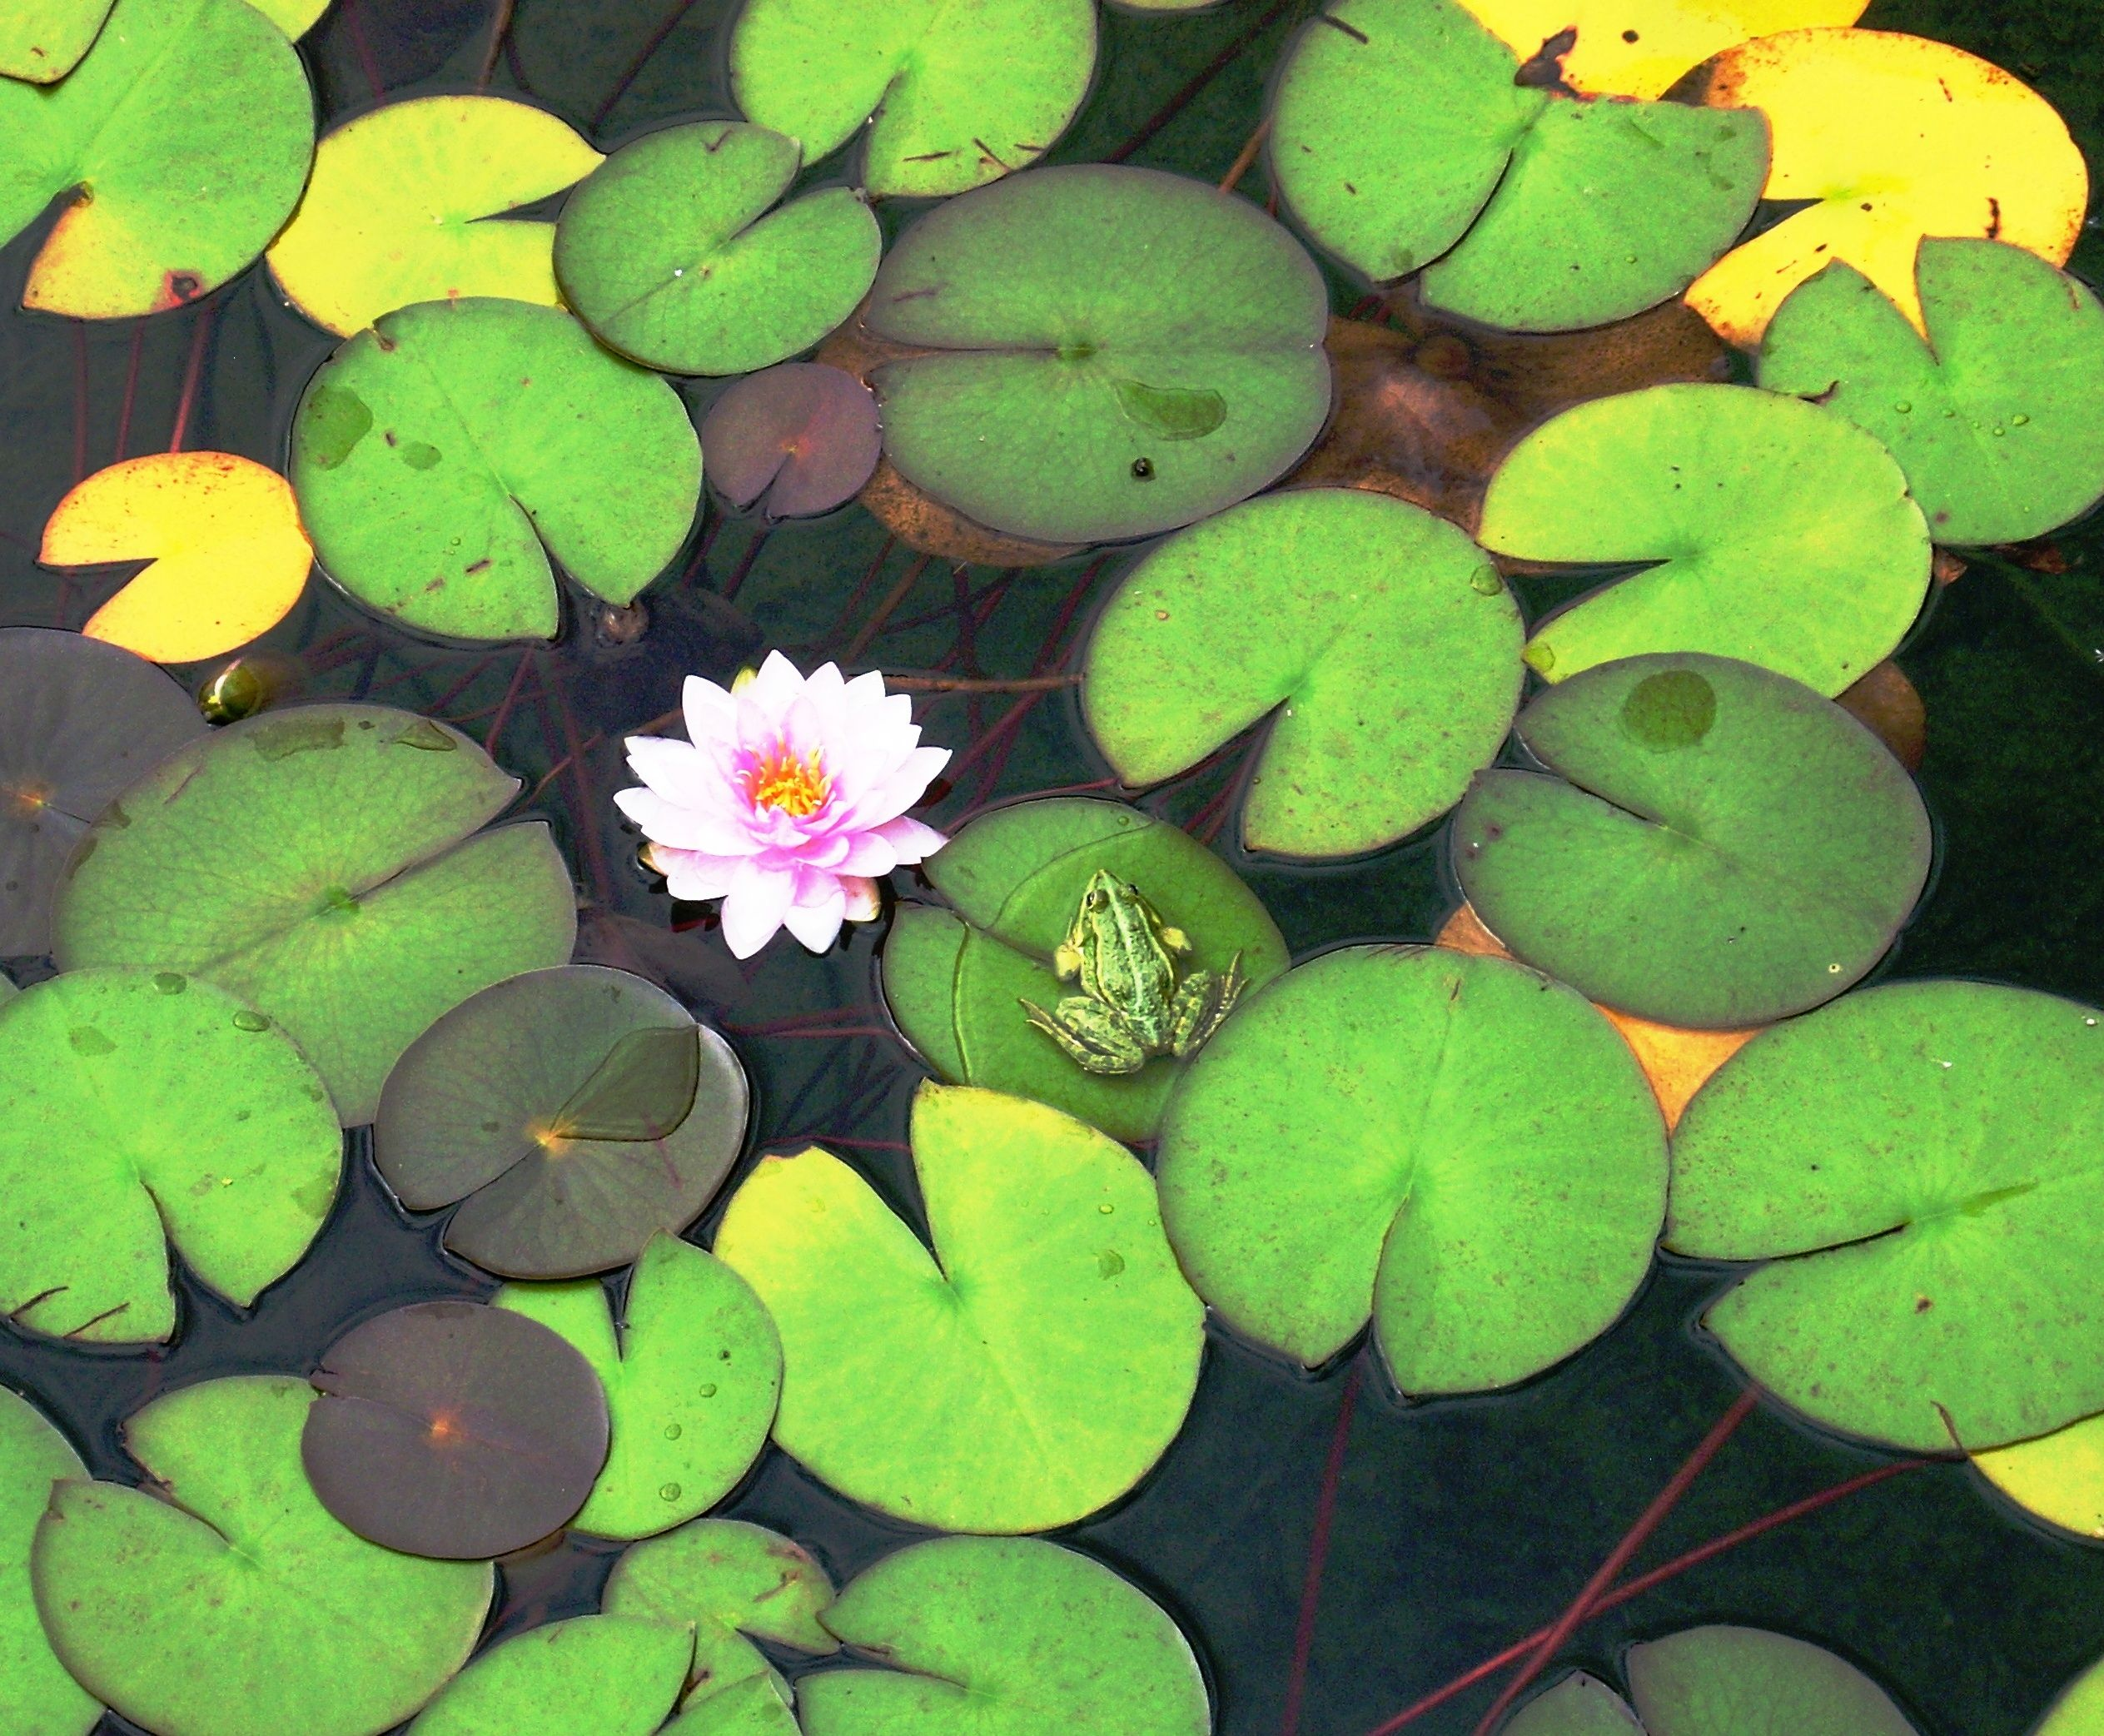 Frosch auf Seerose / frog on lily